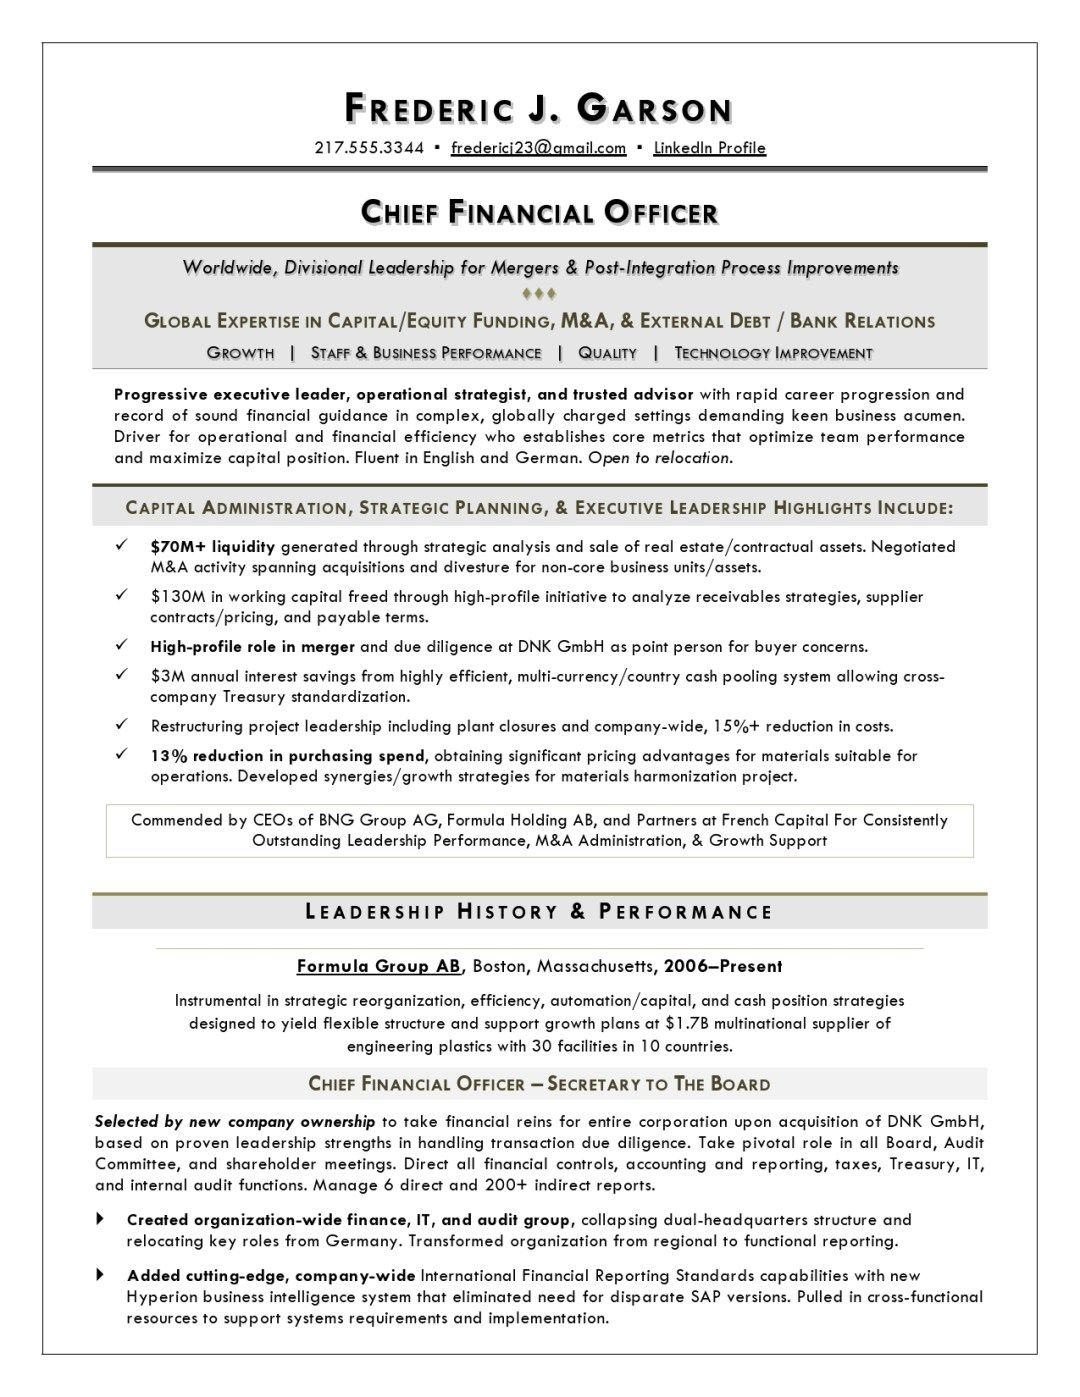 CFO Resume Sample Page 1